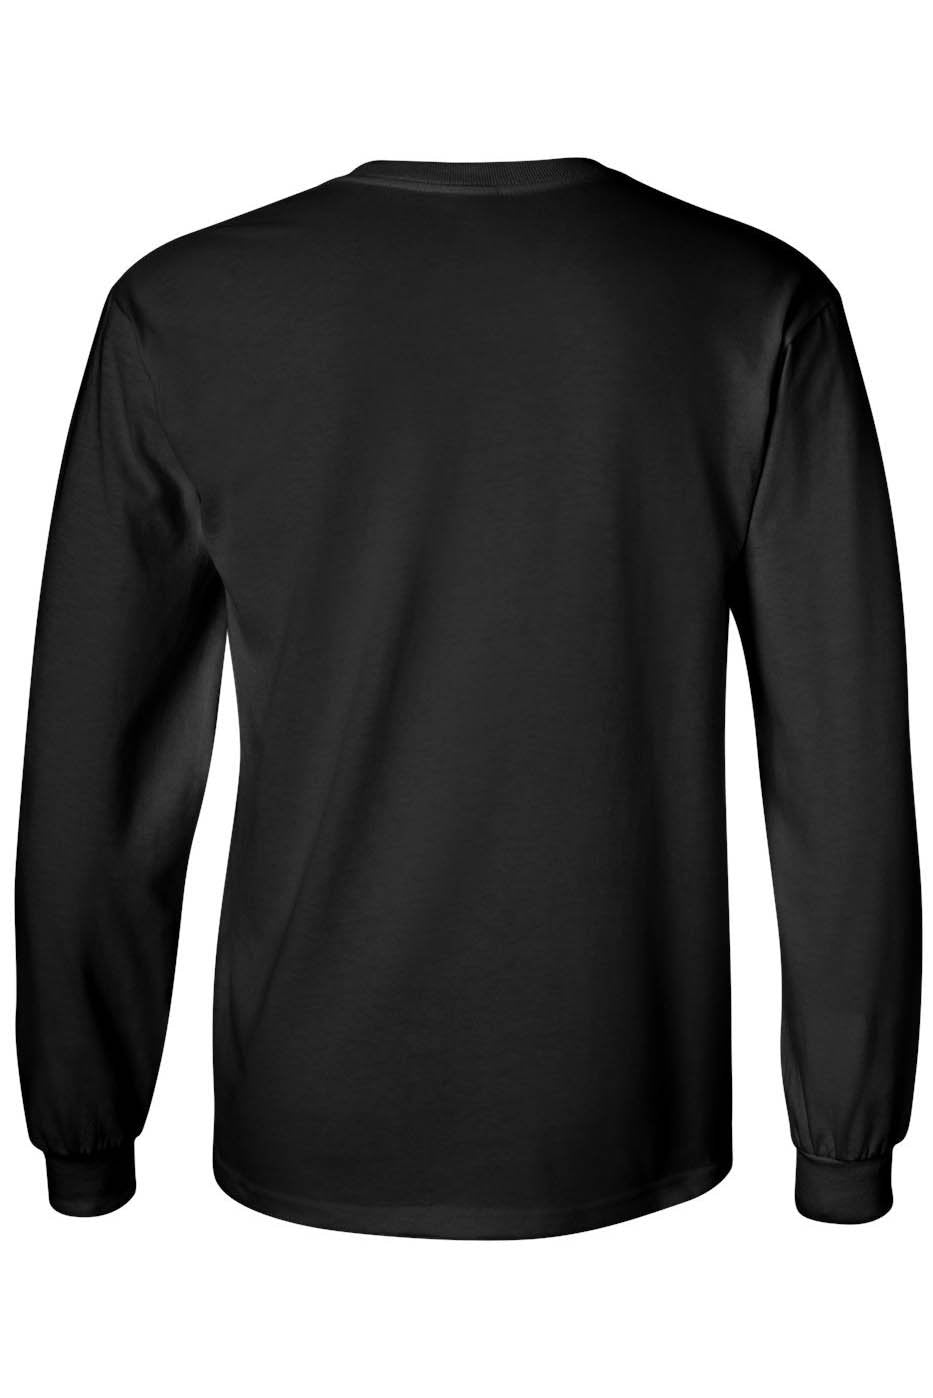 Unisex I Love My Hot Husband Marriage Love Sex Long Sleeve T-shirt